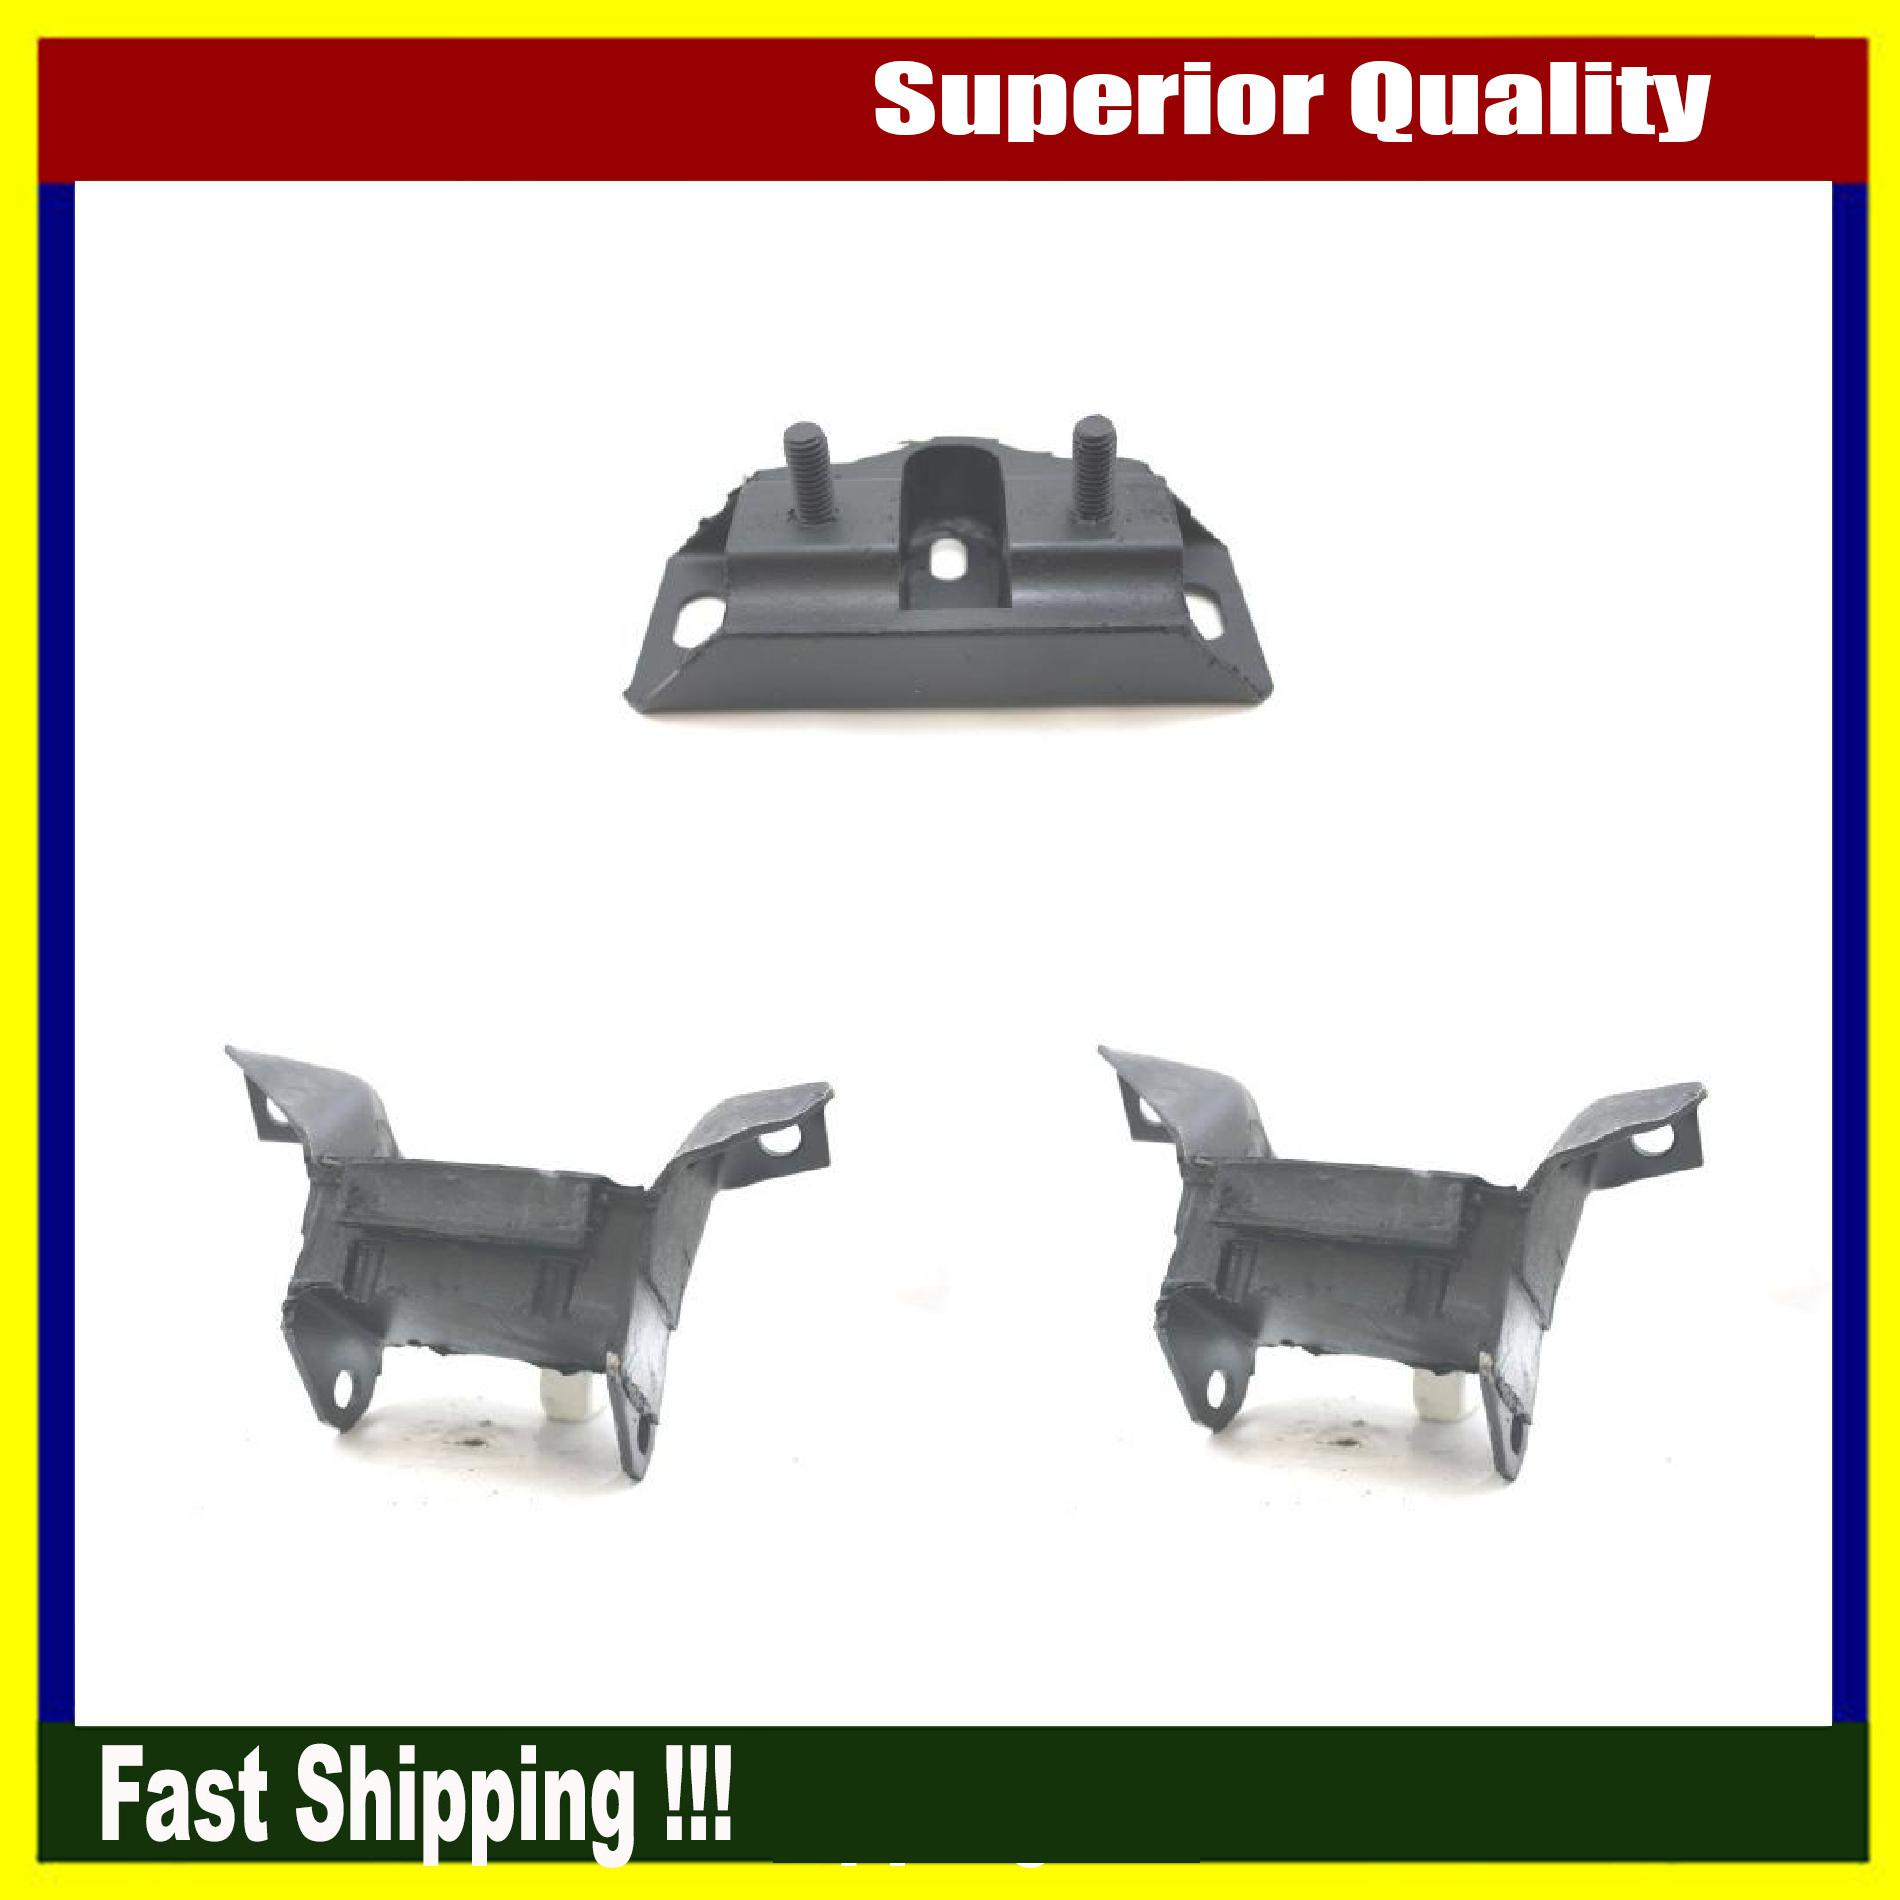 3Pcs Brand New Anchor Engine Mount Set For 1965 Ford Mustang Shelby GT-350